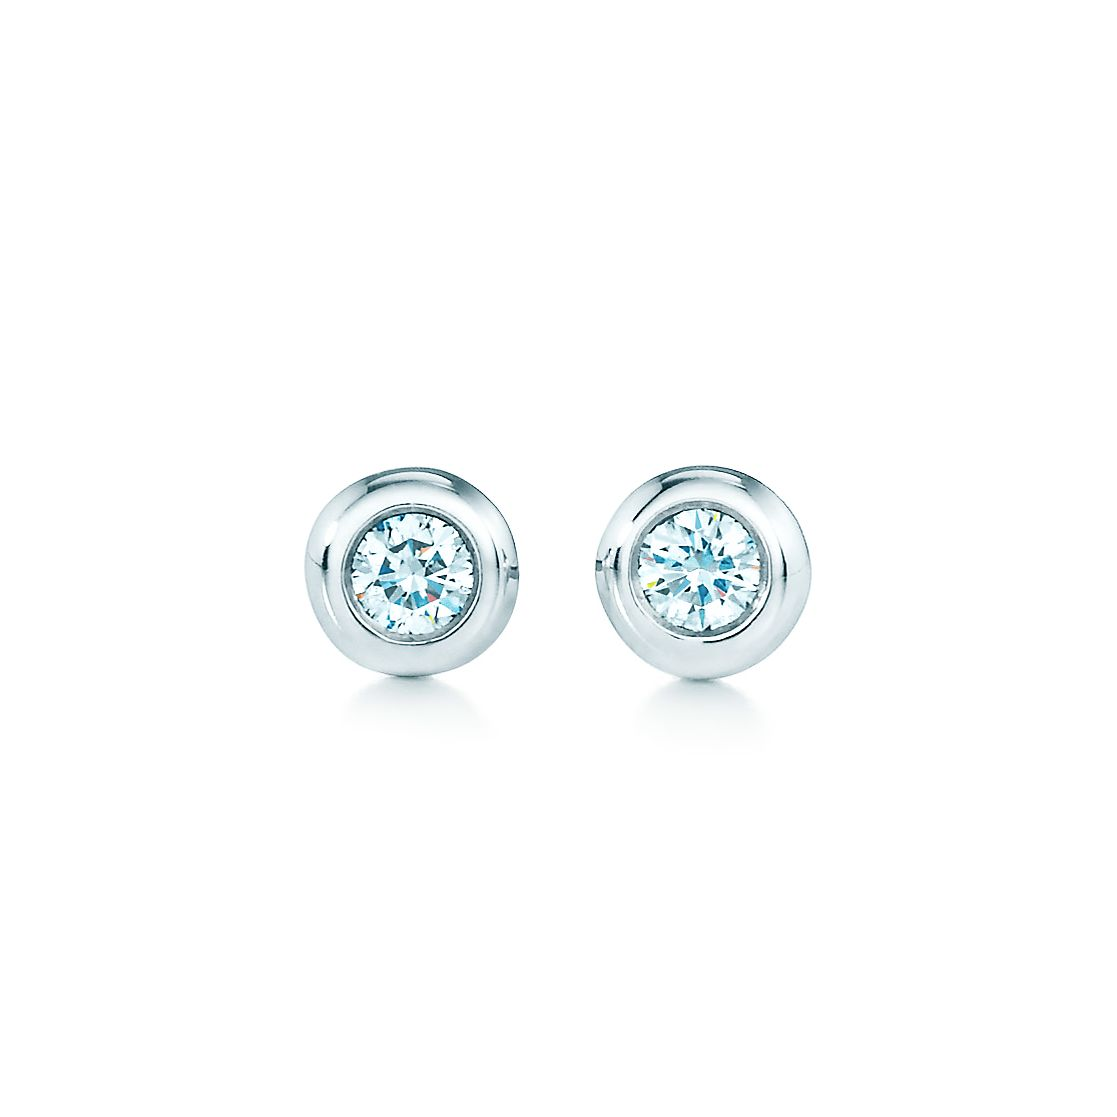 db earrings diamond classic stud